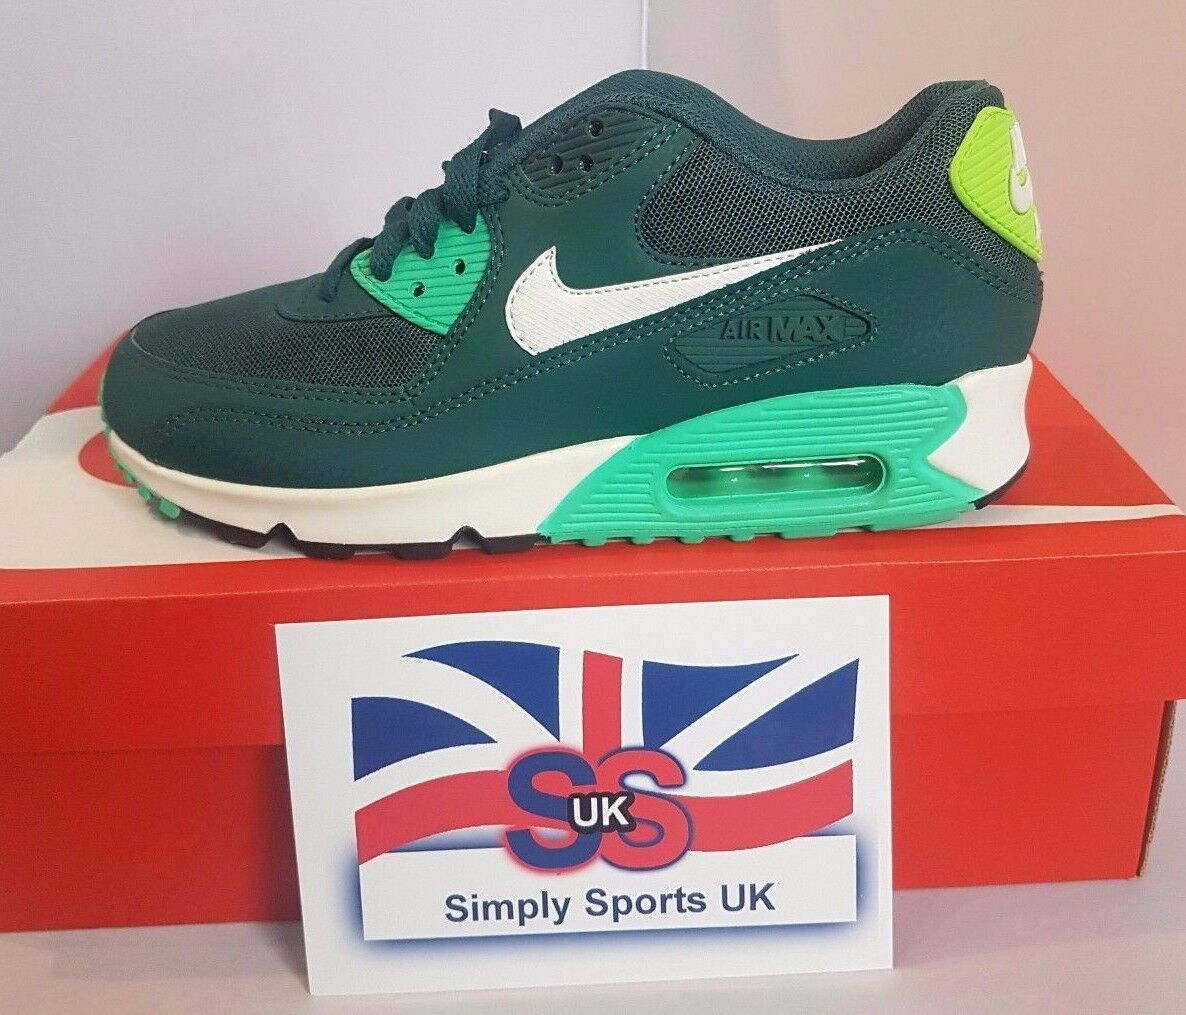 femmes  Air Max 90 Essential Green [616730 300]4.5 US 7 EUR 37.5